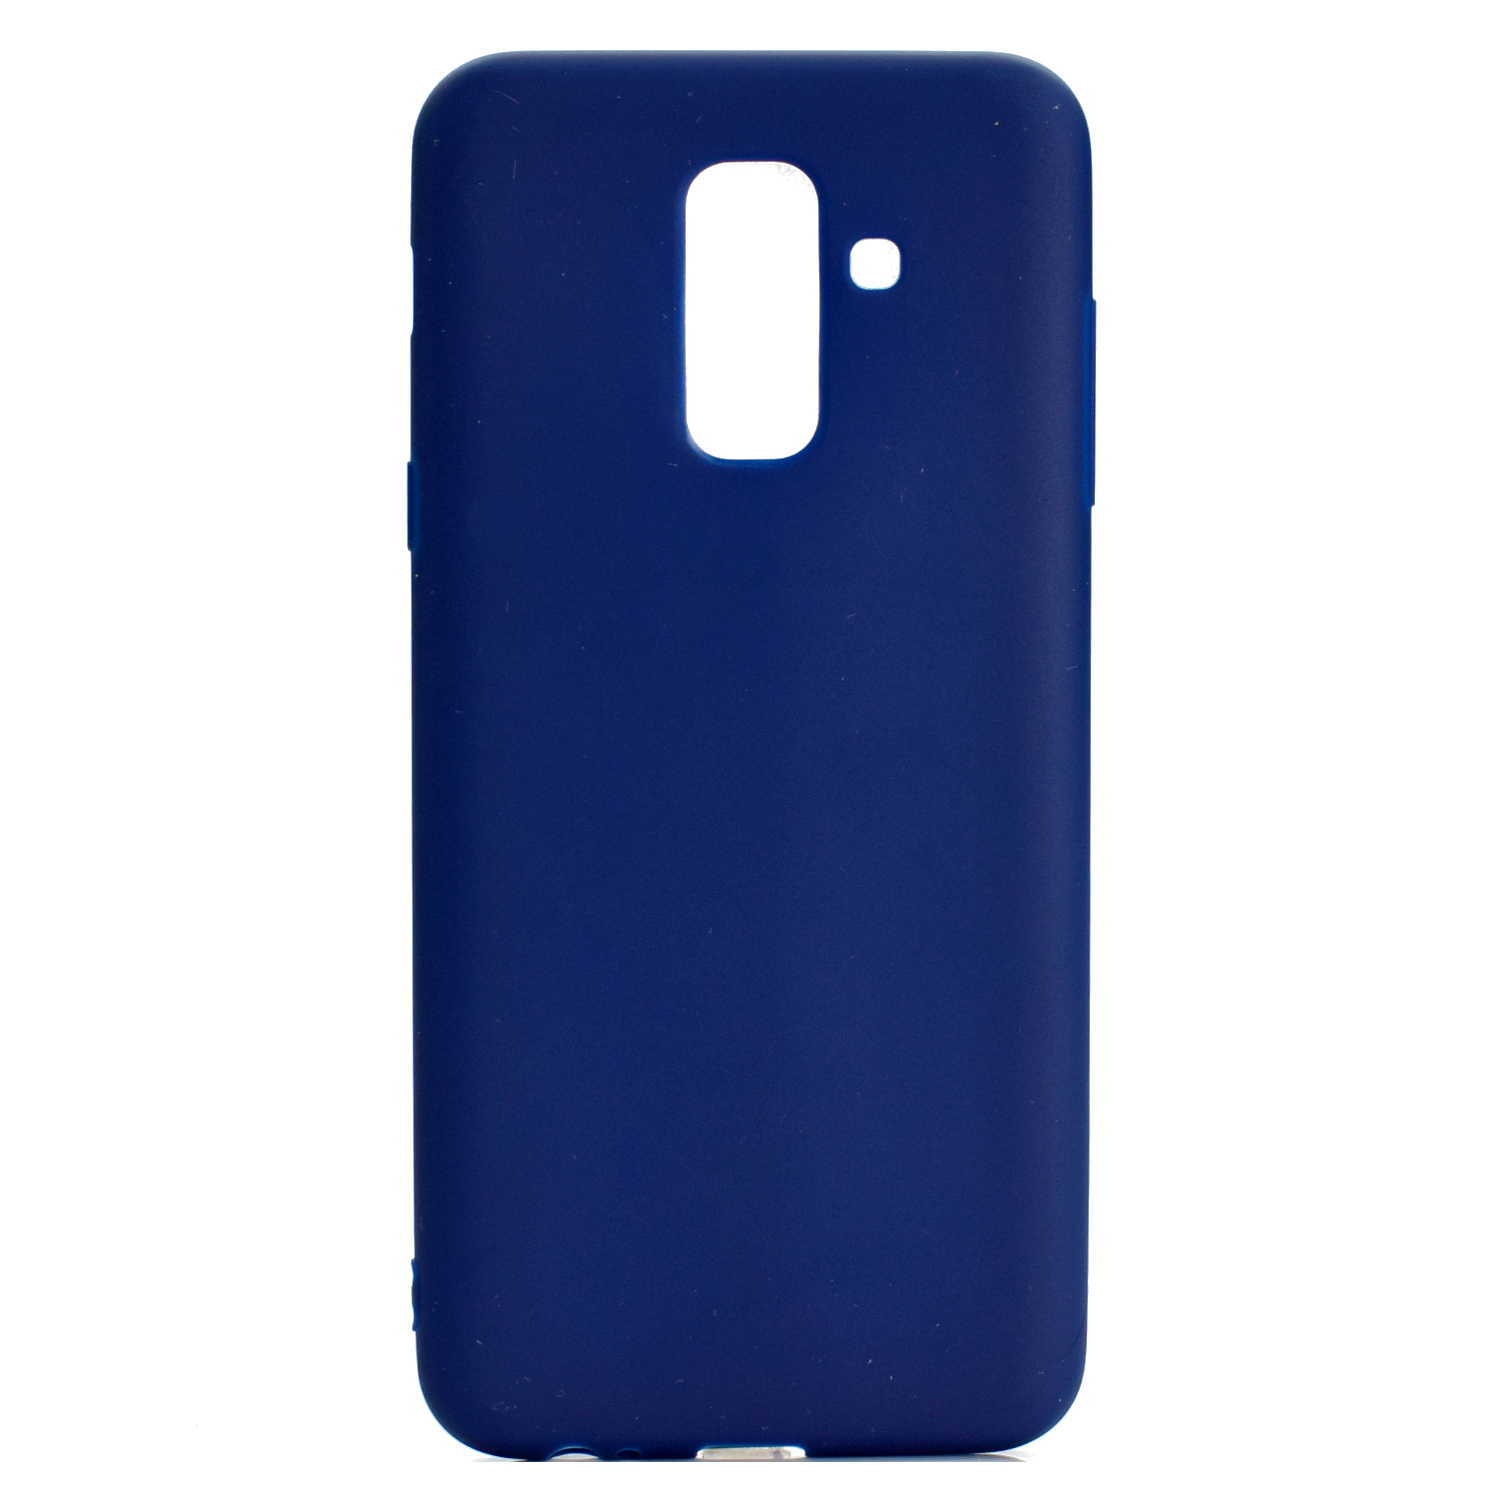 for Samsung A6 plus 2018 Lovely Candy Color Matte TPU Anti-scratch Non-slip Protective Cover Back Case Navy